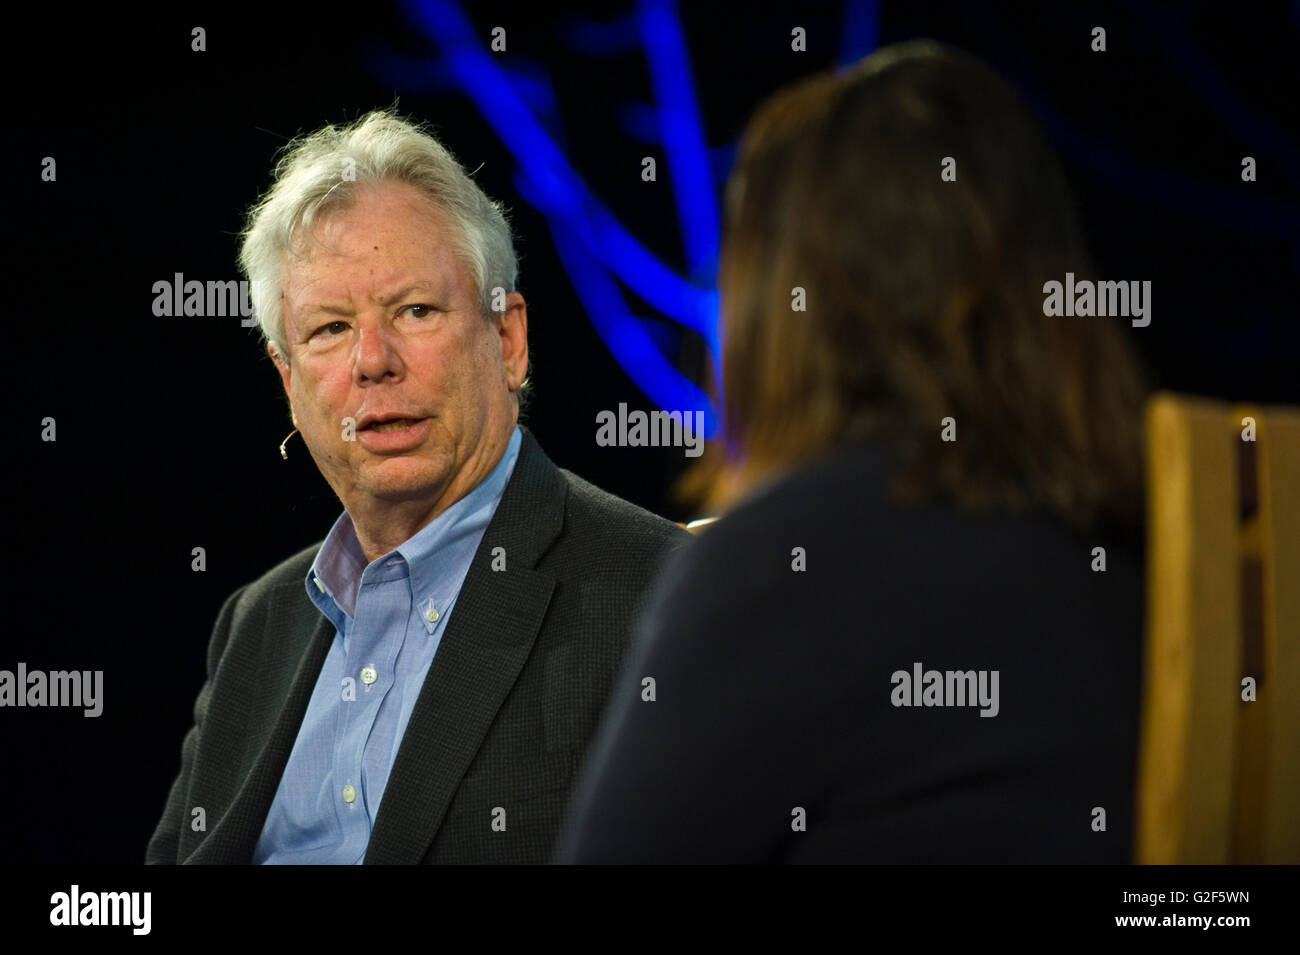 Richard Thaler Professor of Behavioral Science and Economics speaking on stage at Hay Festival 2016 - Stock Image